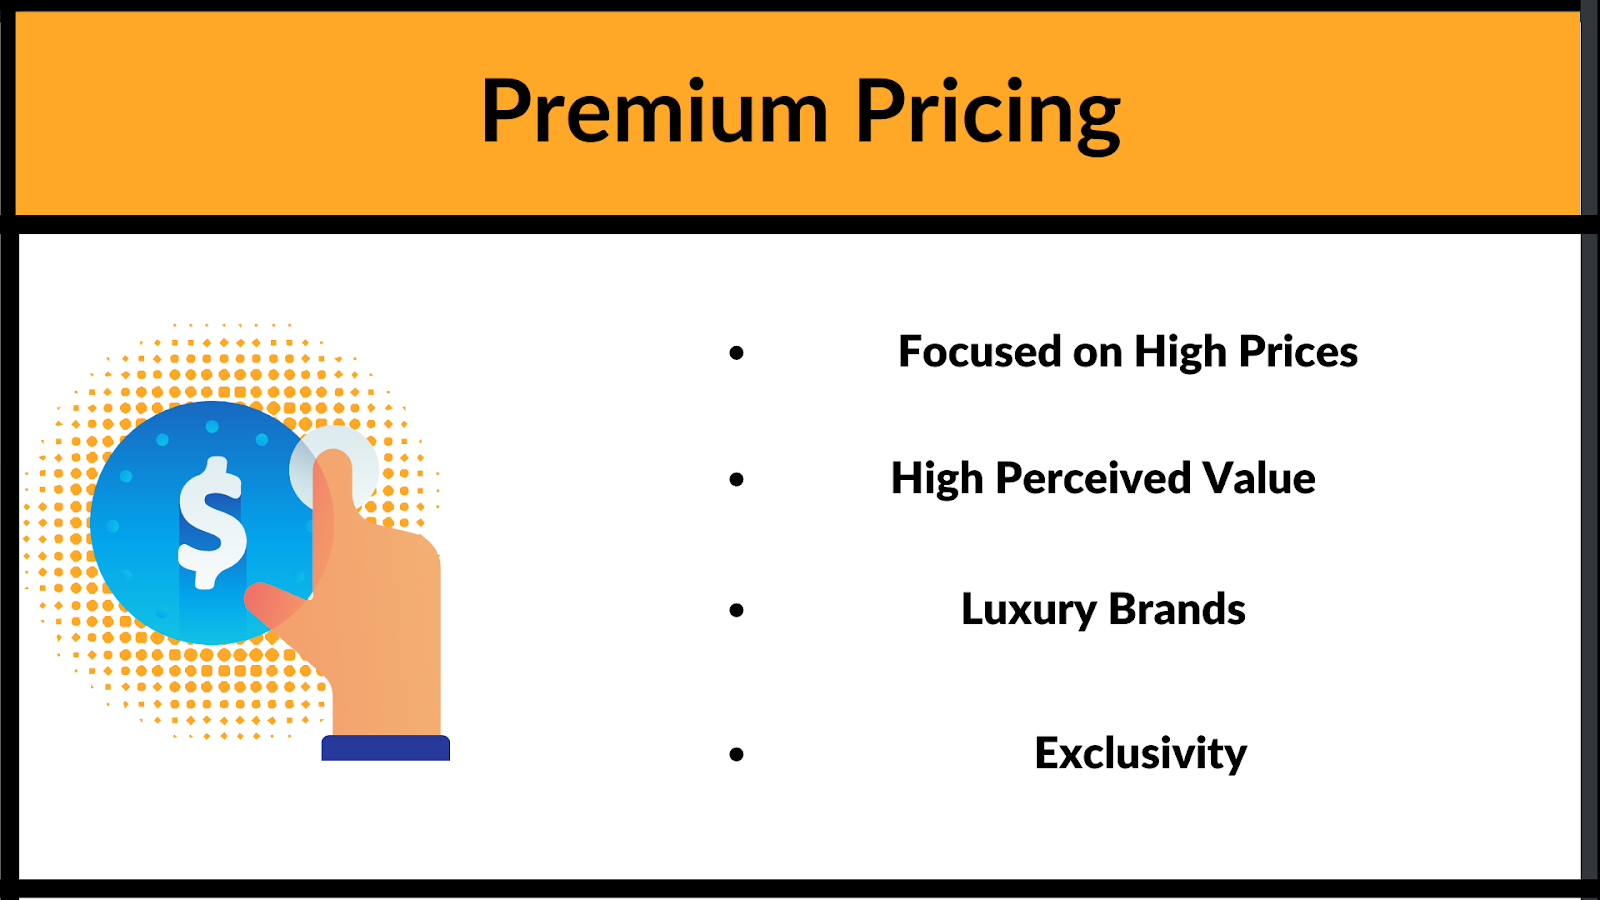 What are the elements for premium pricing